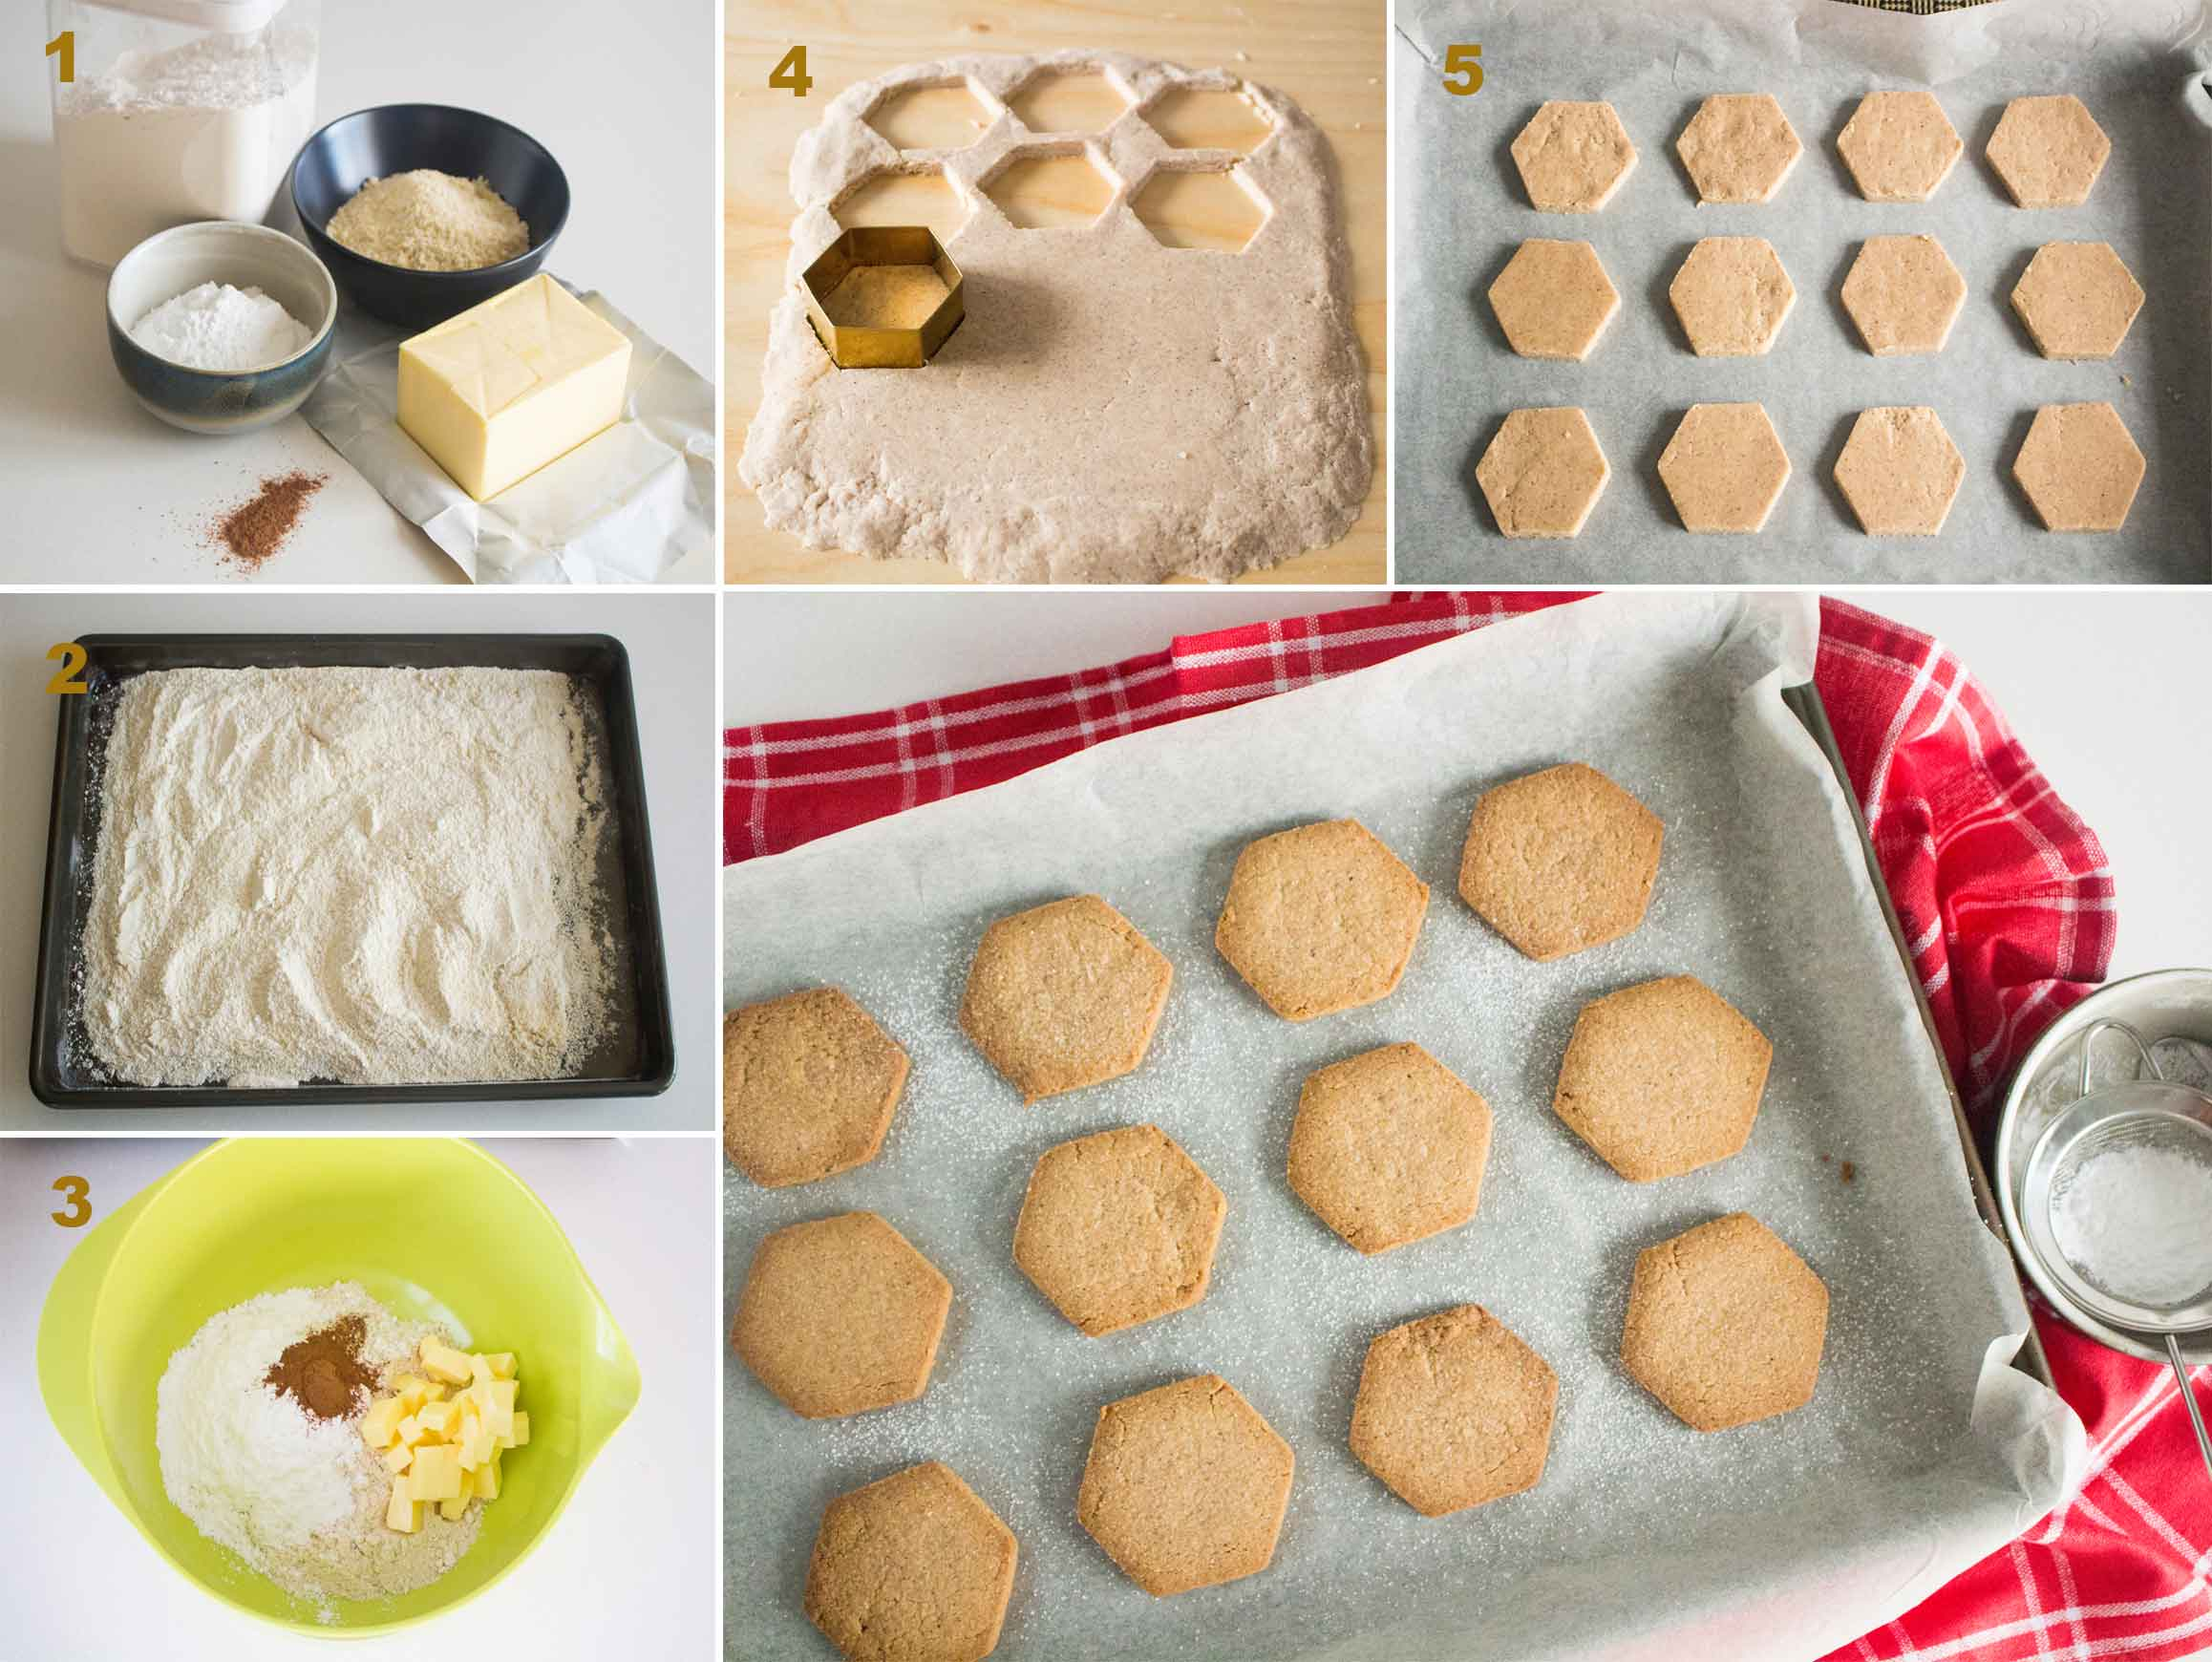 Collage of images showing the steps in making Polvorones (Spanish Christmas Biscuits).